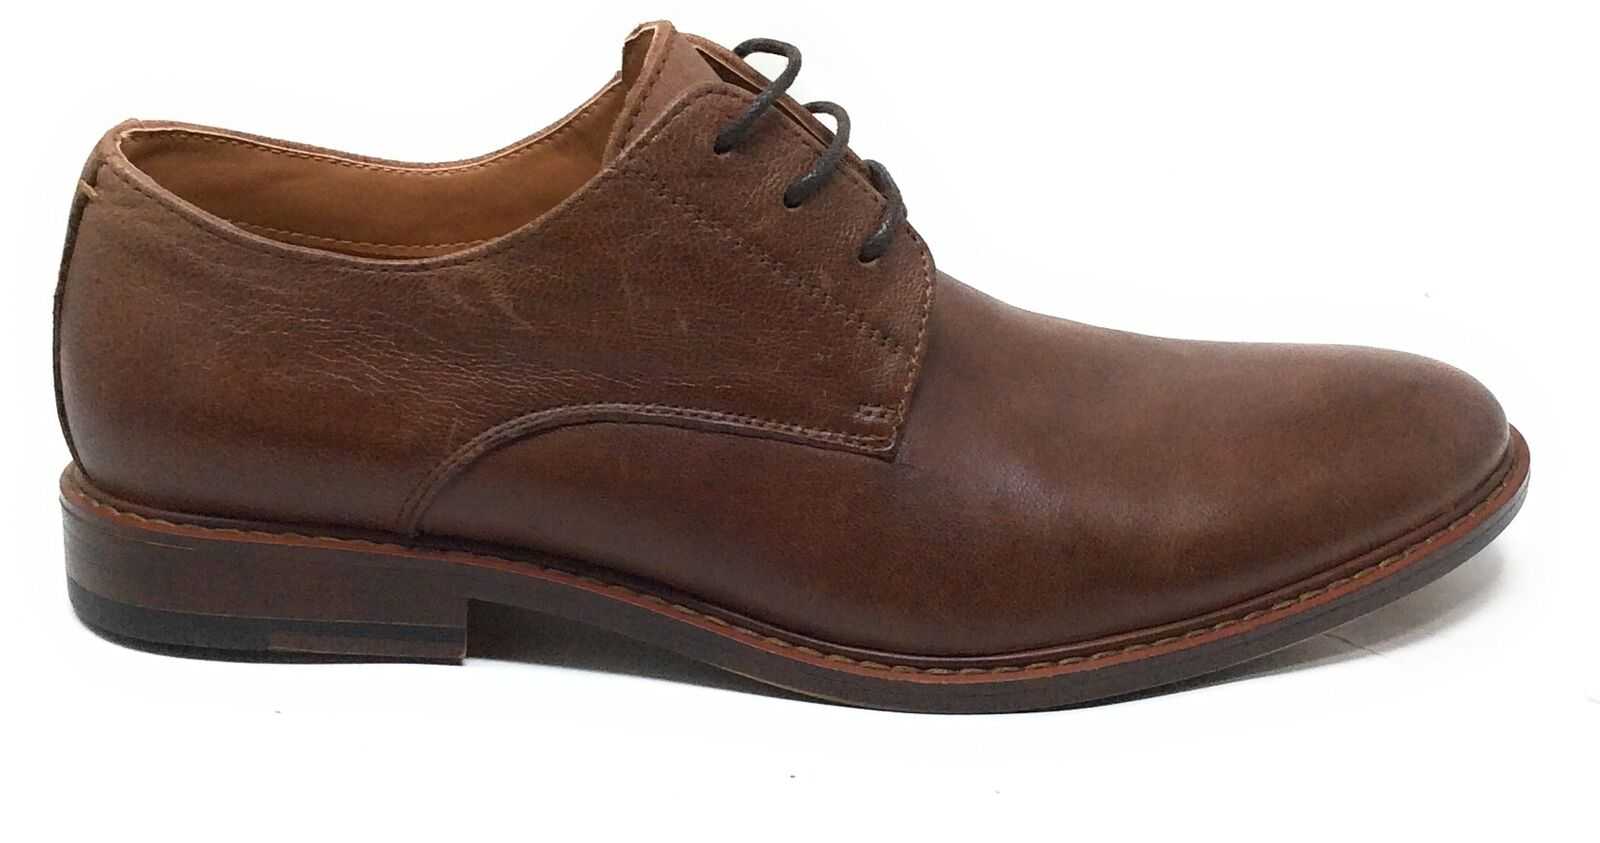 J75 By Jump Mens Primo Oxford Dress Shoes Dark Tan Leather Size 11 M